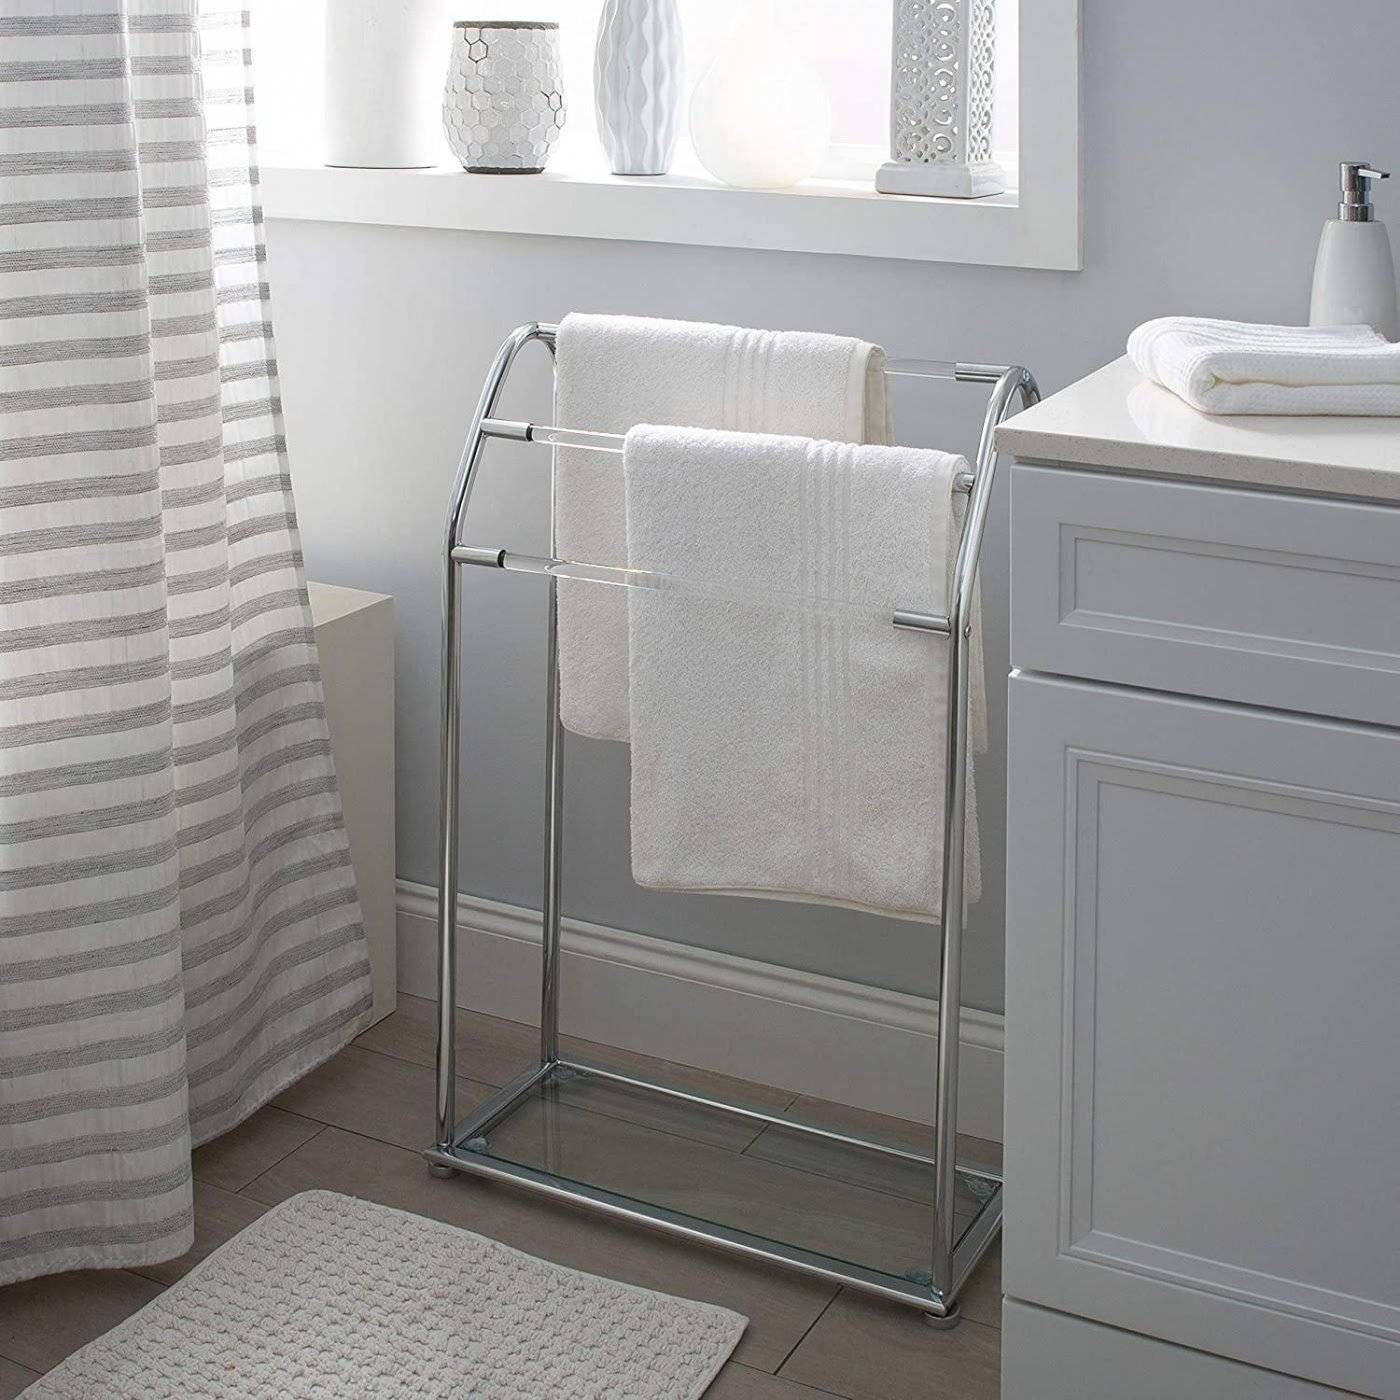 Stainless-Steel-Towel-Stand-36305